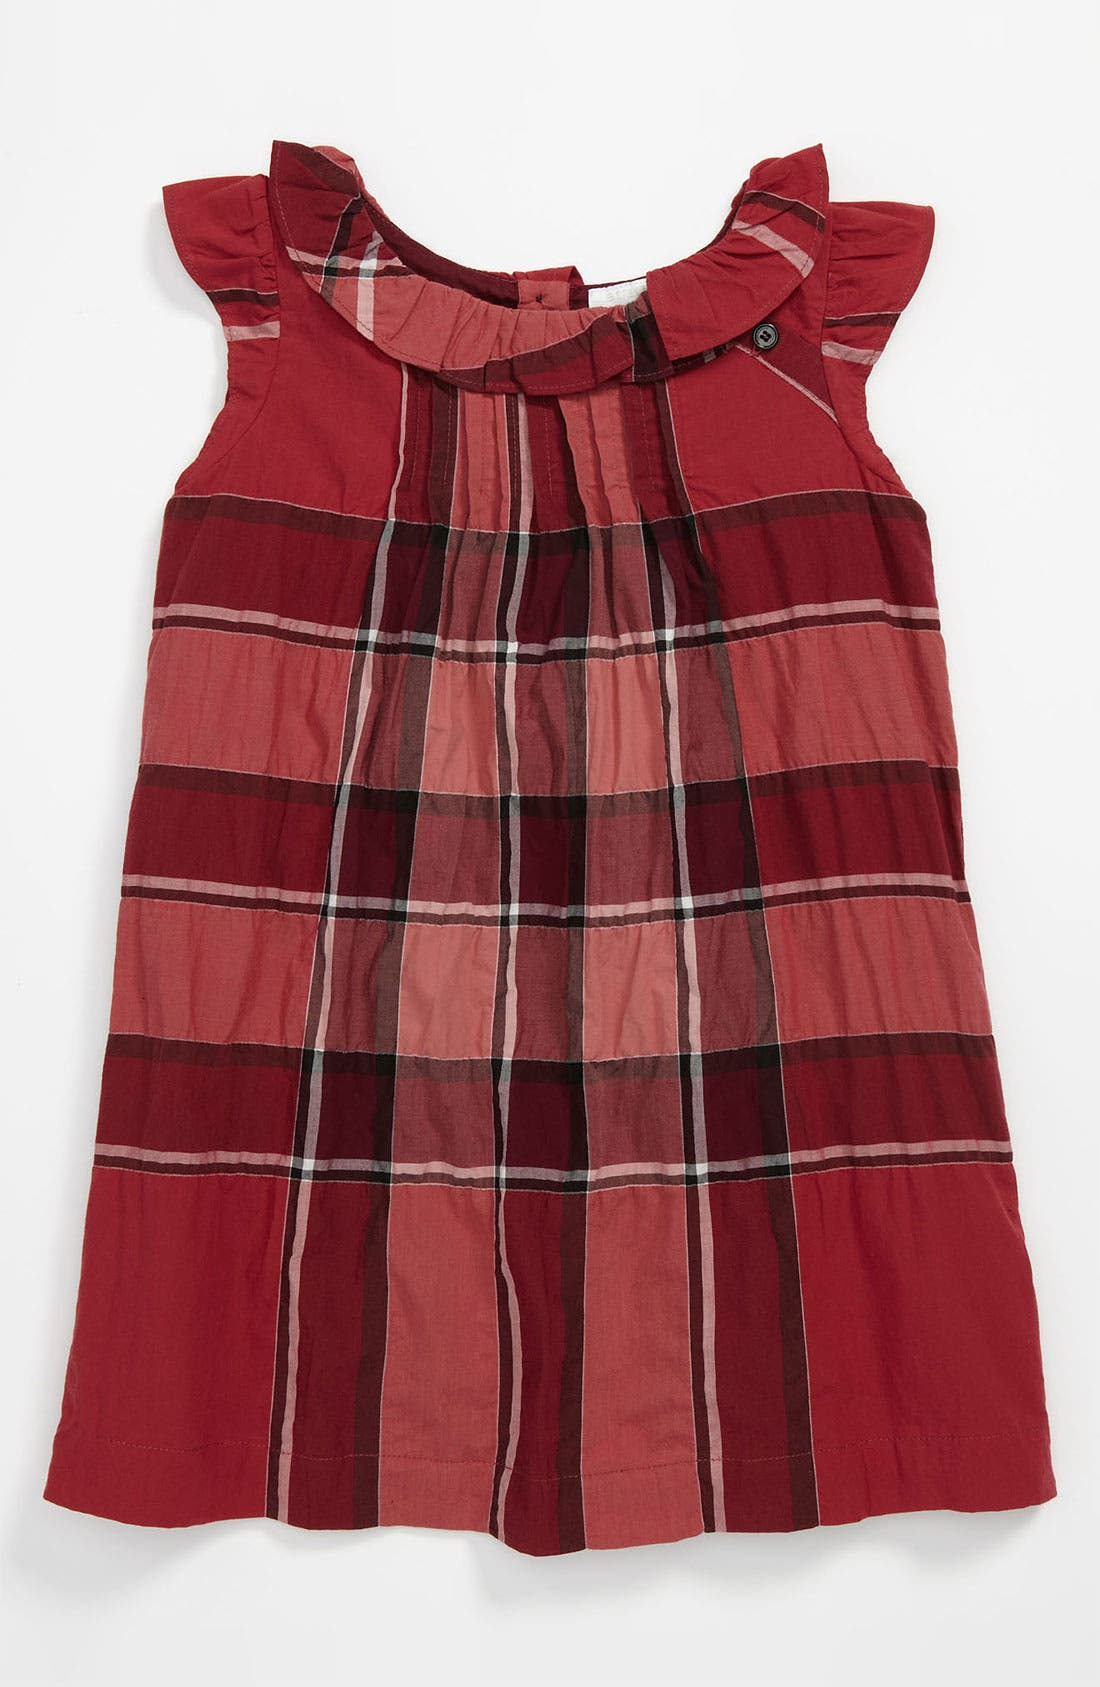 Alternate Image 1 Selected - Burberry 'Olly' Check Print Dress (Toddler)